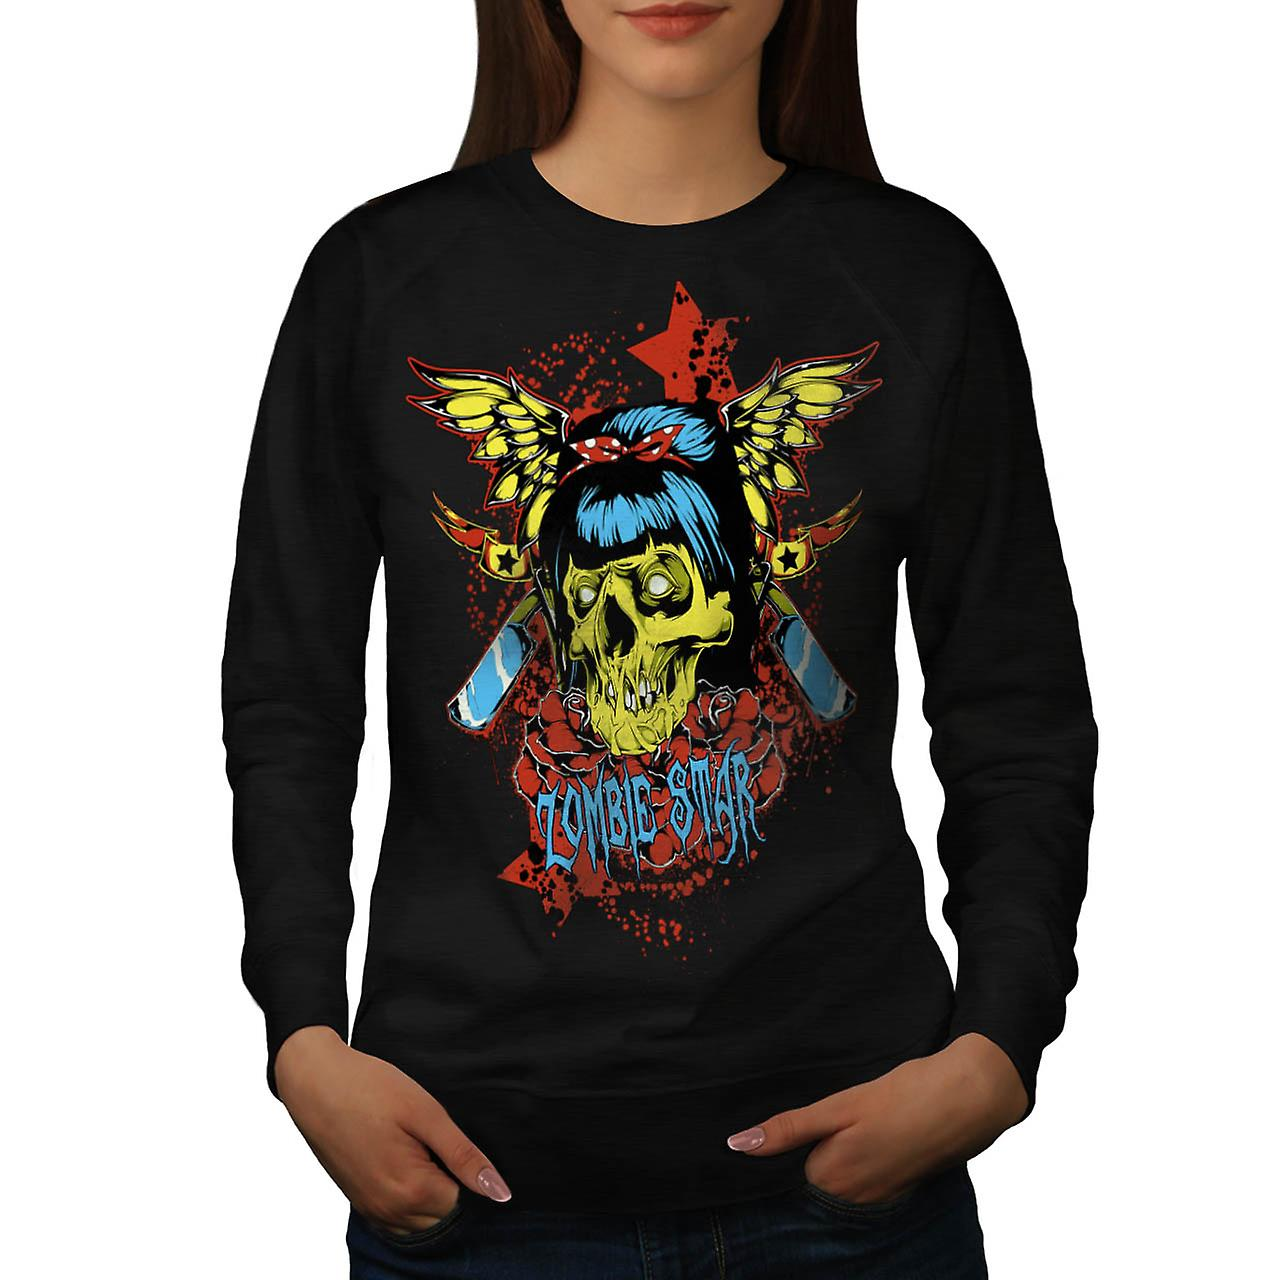 Zombie Star Horror Monster Skull Women Black Sweatshirt | Wellcoda